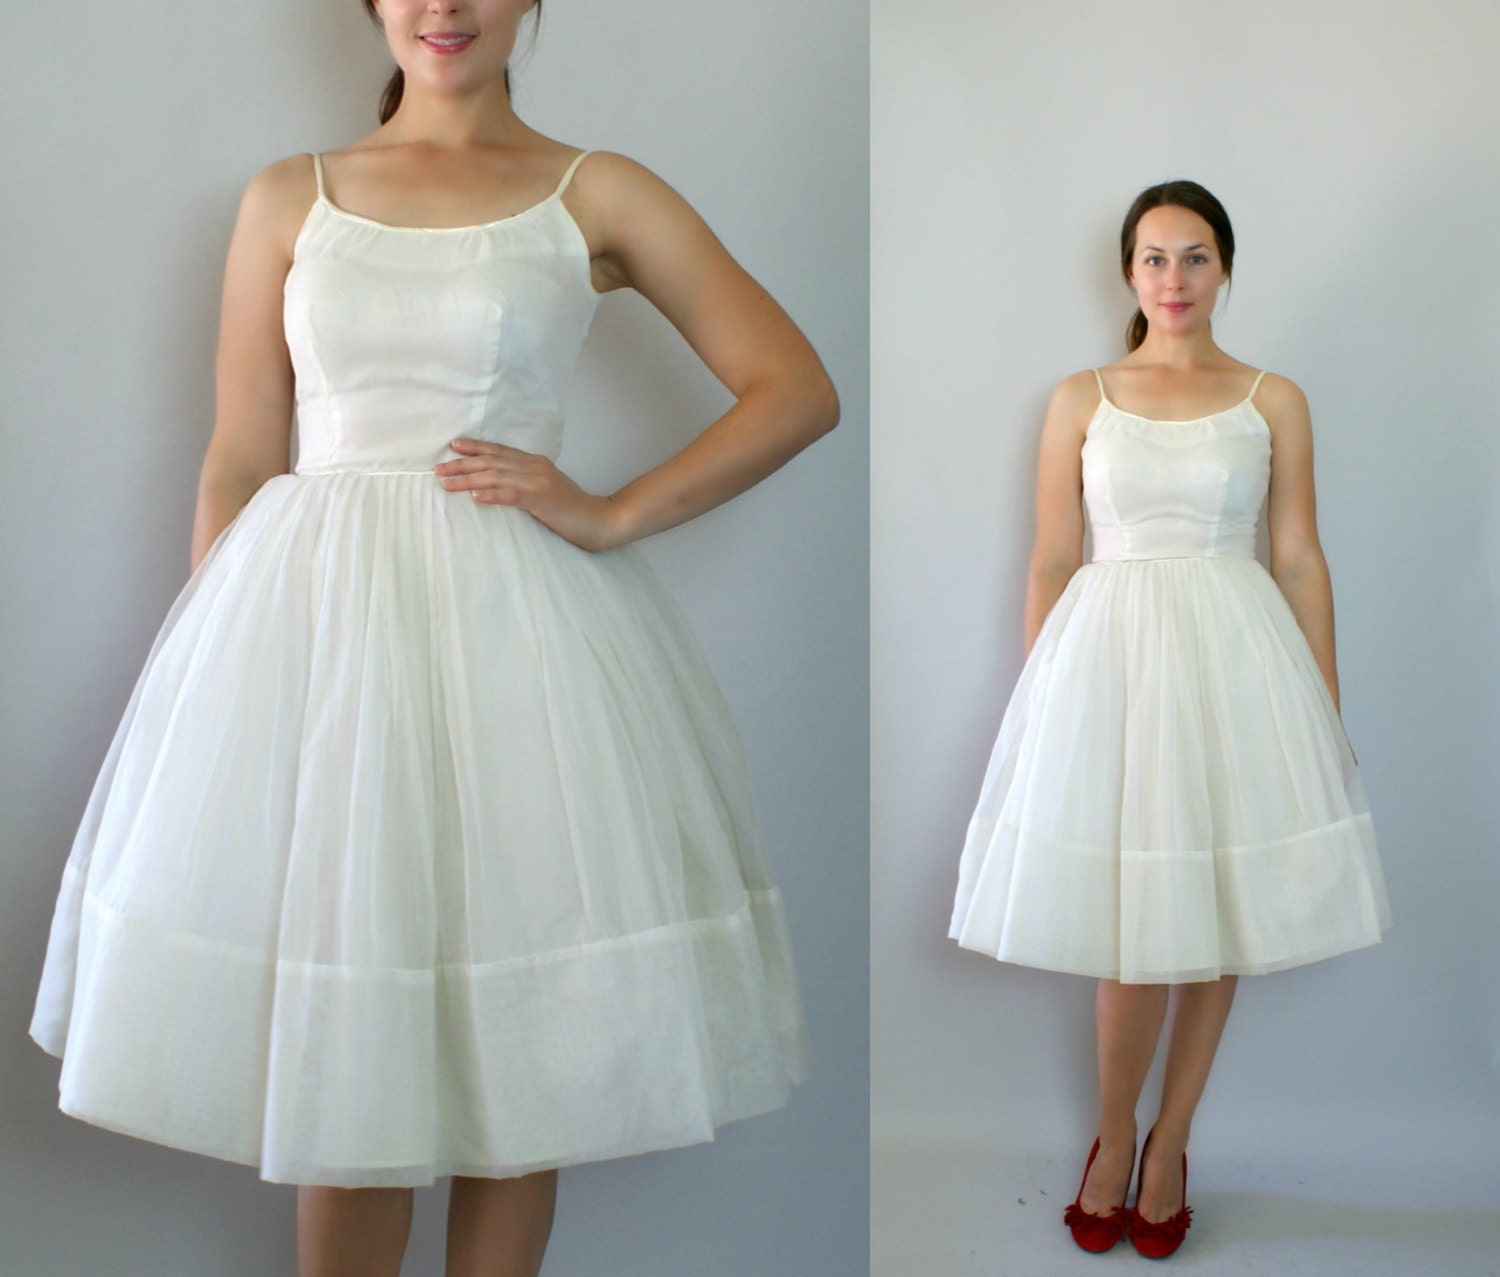 Sale vintage 1950s wedding dress full skirt by sweetbeefinds for 1950s style wedding dresses for sale